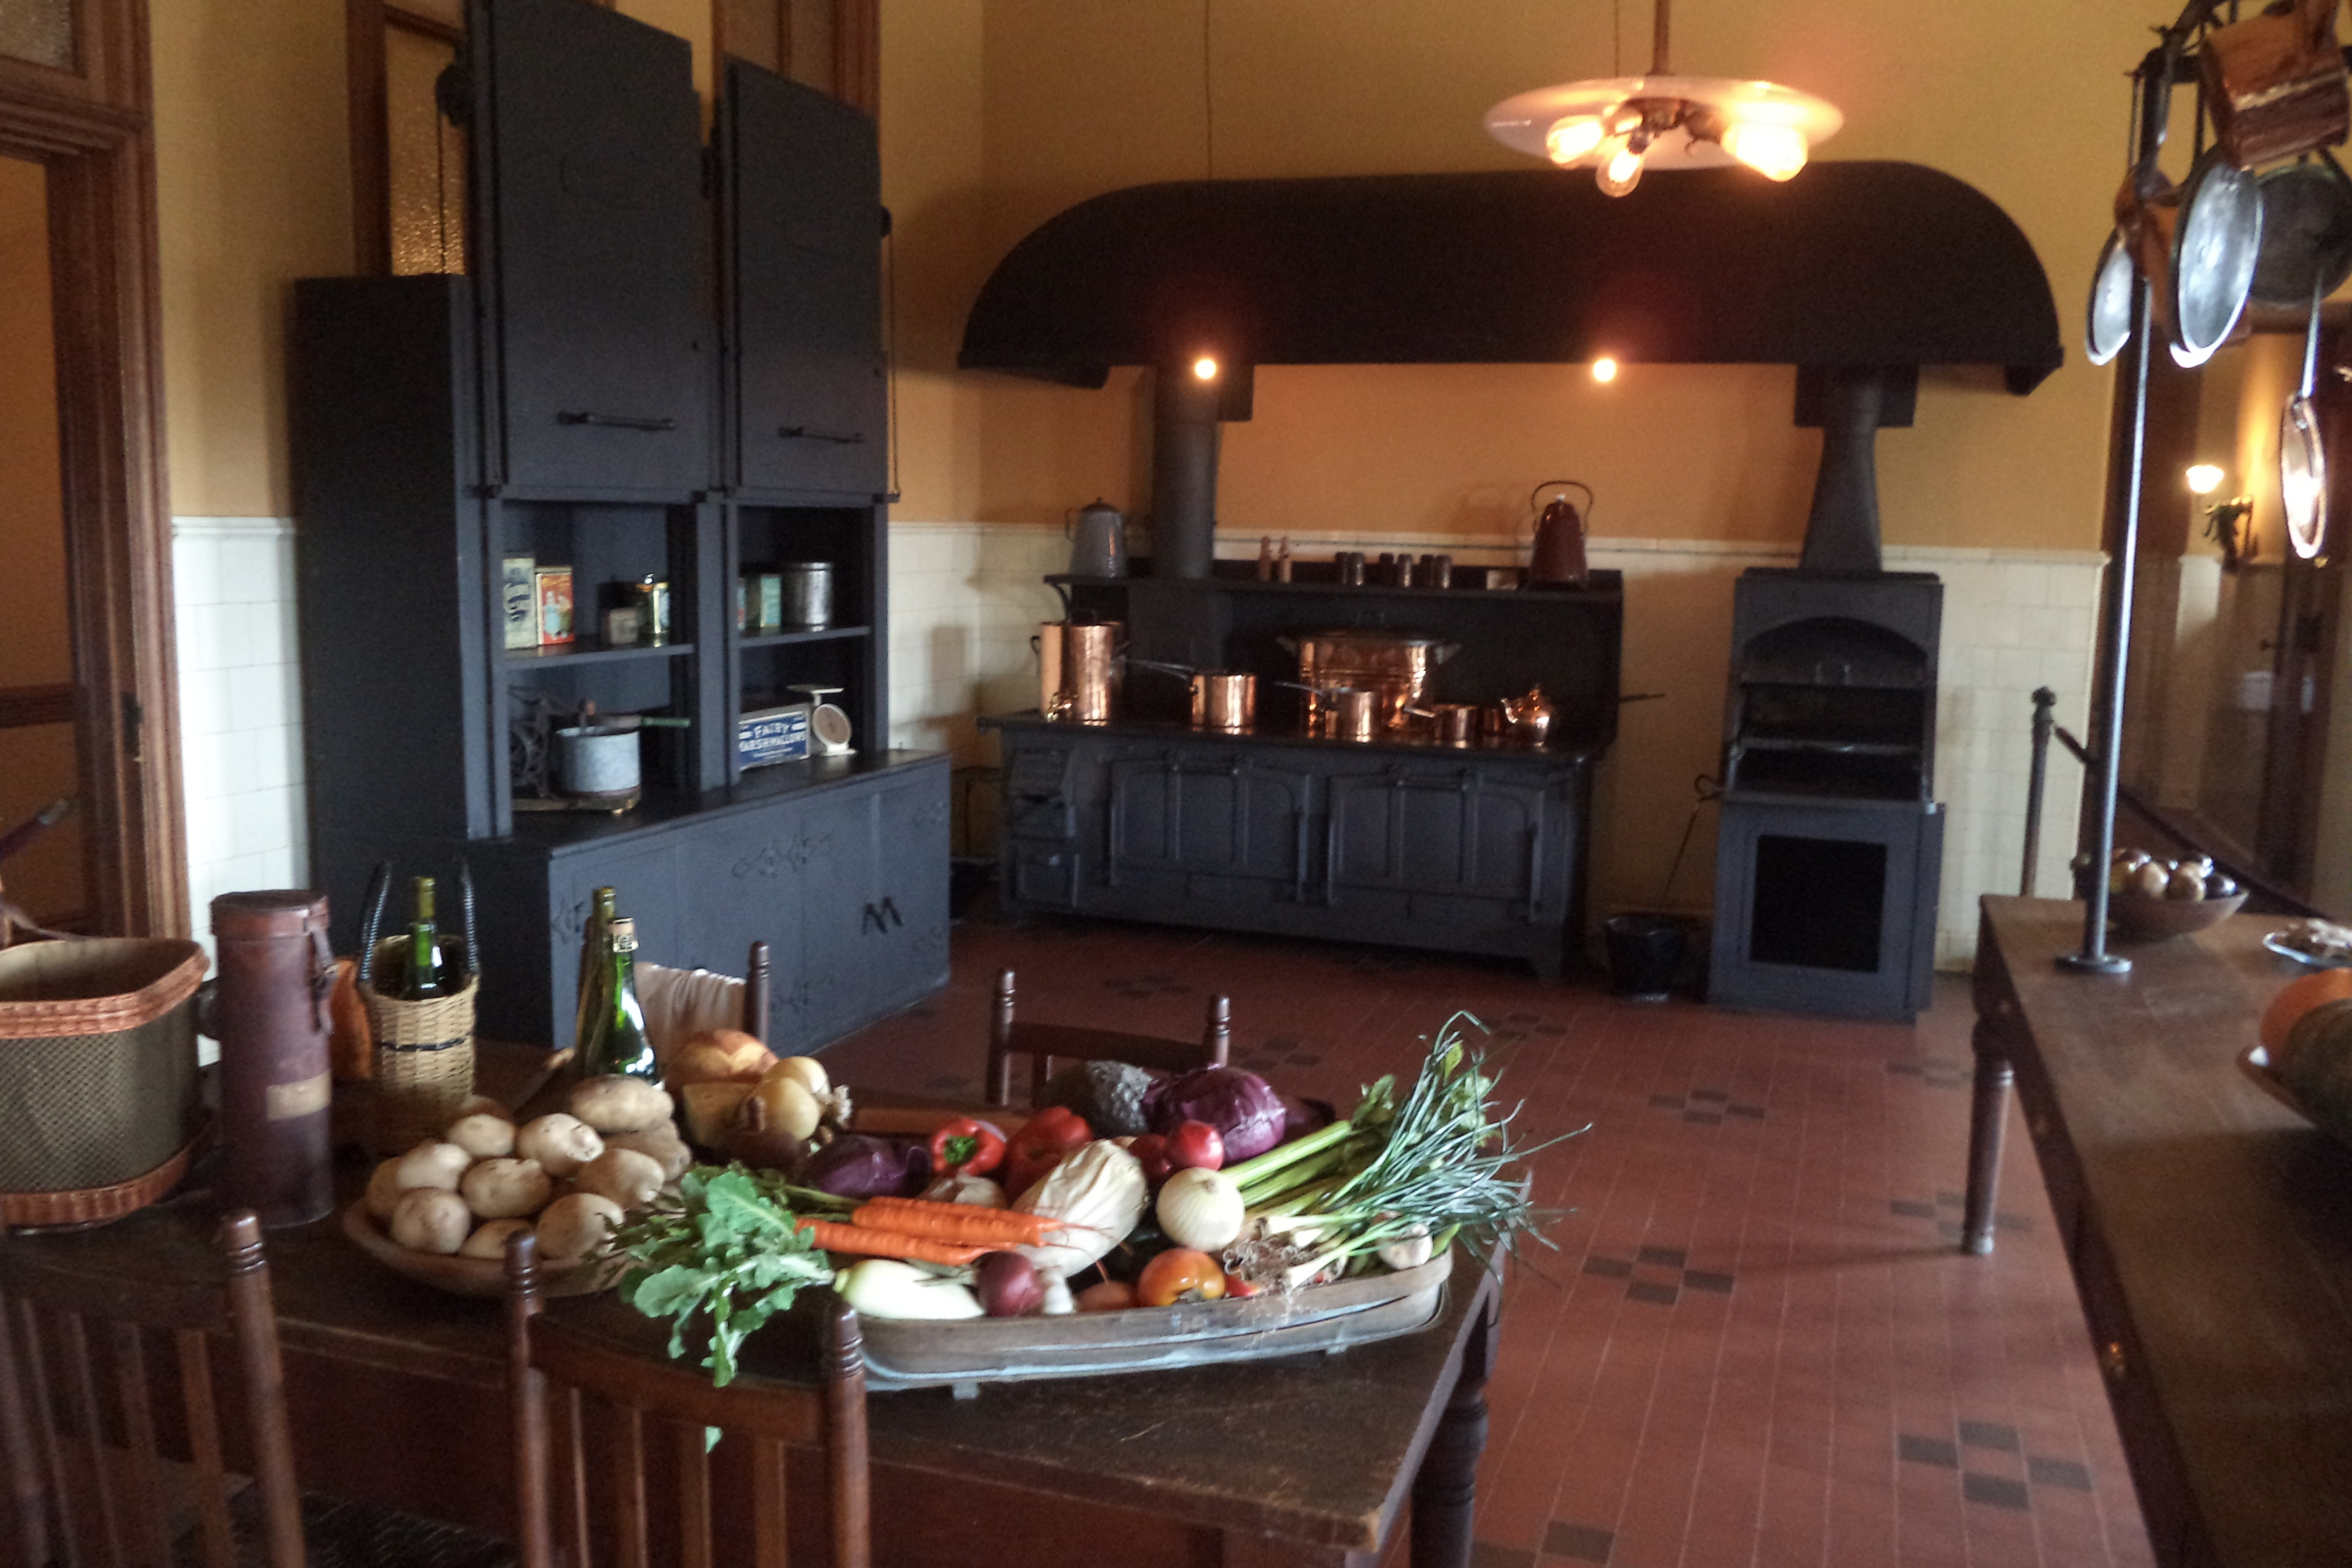 biltmore estate kitchen - photo #7